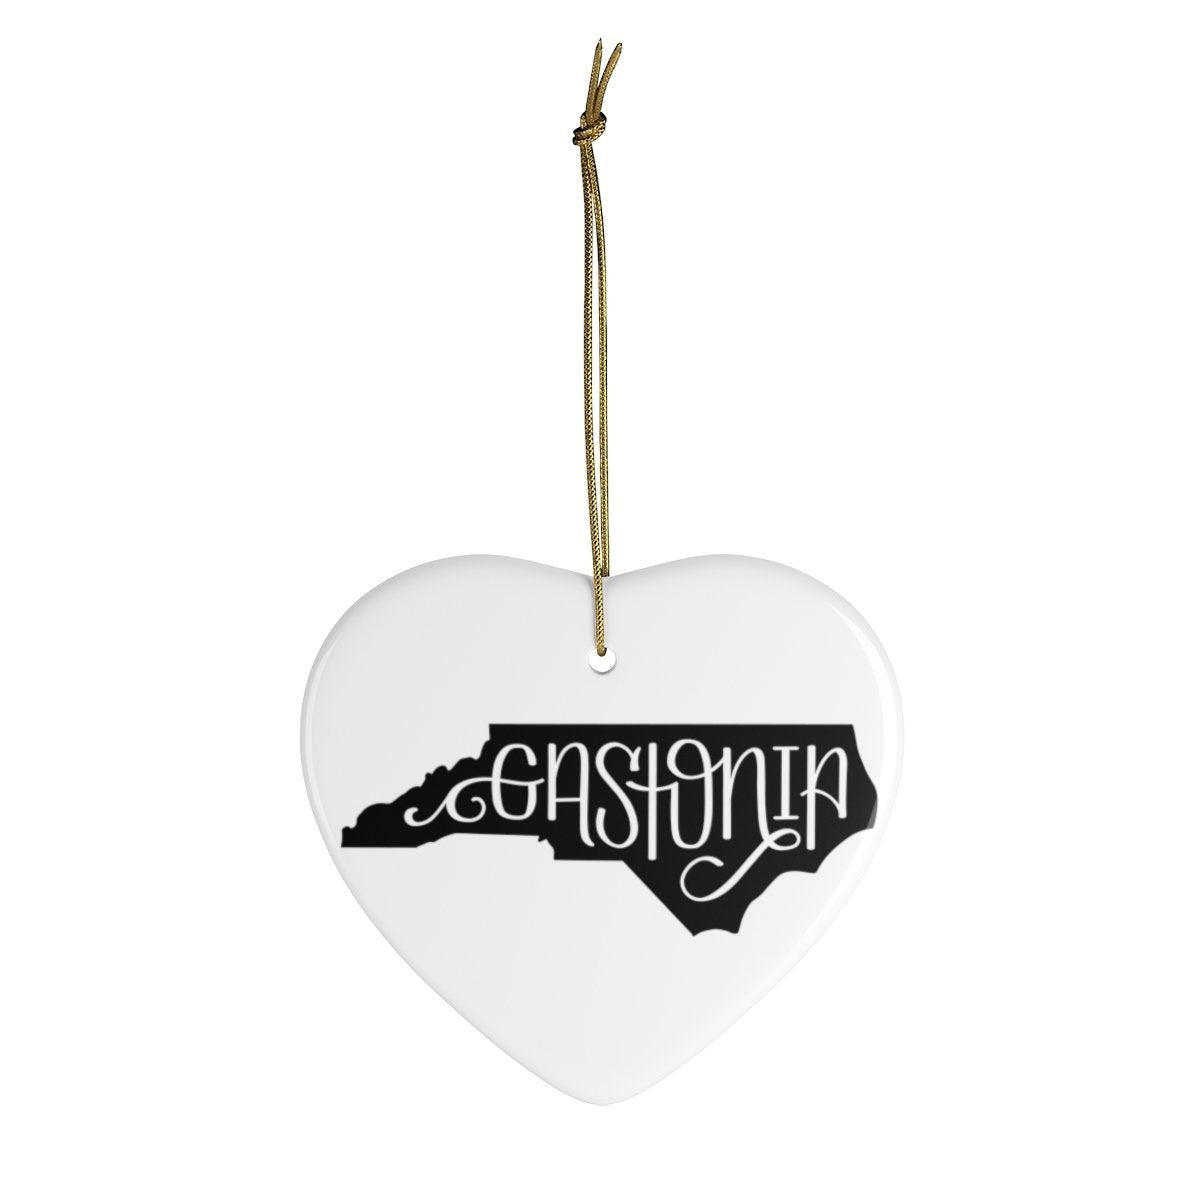 Leanne & Co. Home Decor Heart / One Size Gastonia, NC Ceramic Ornament